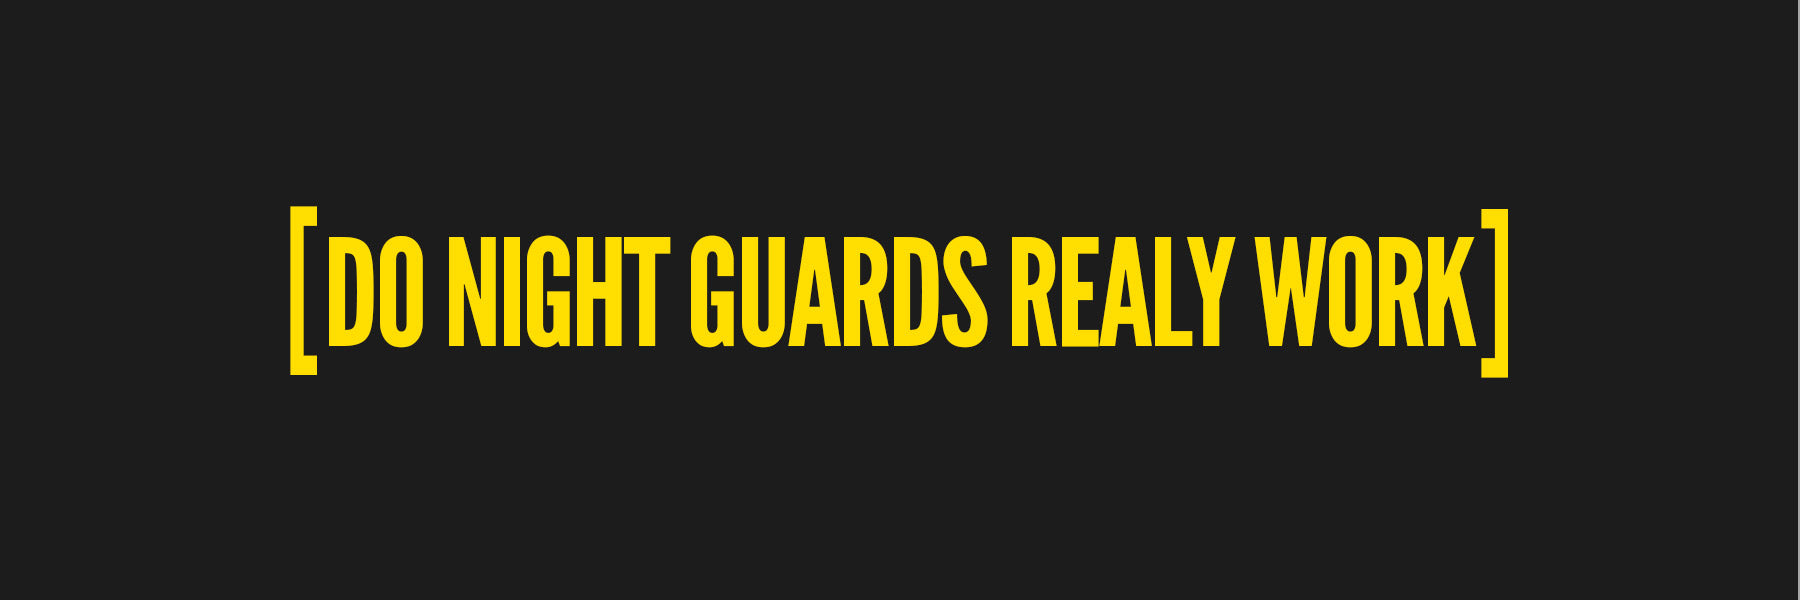 Do night guards really work?